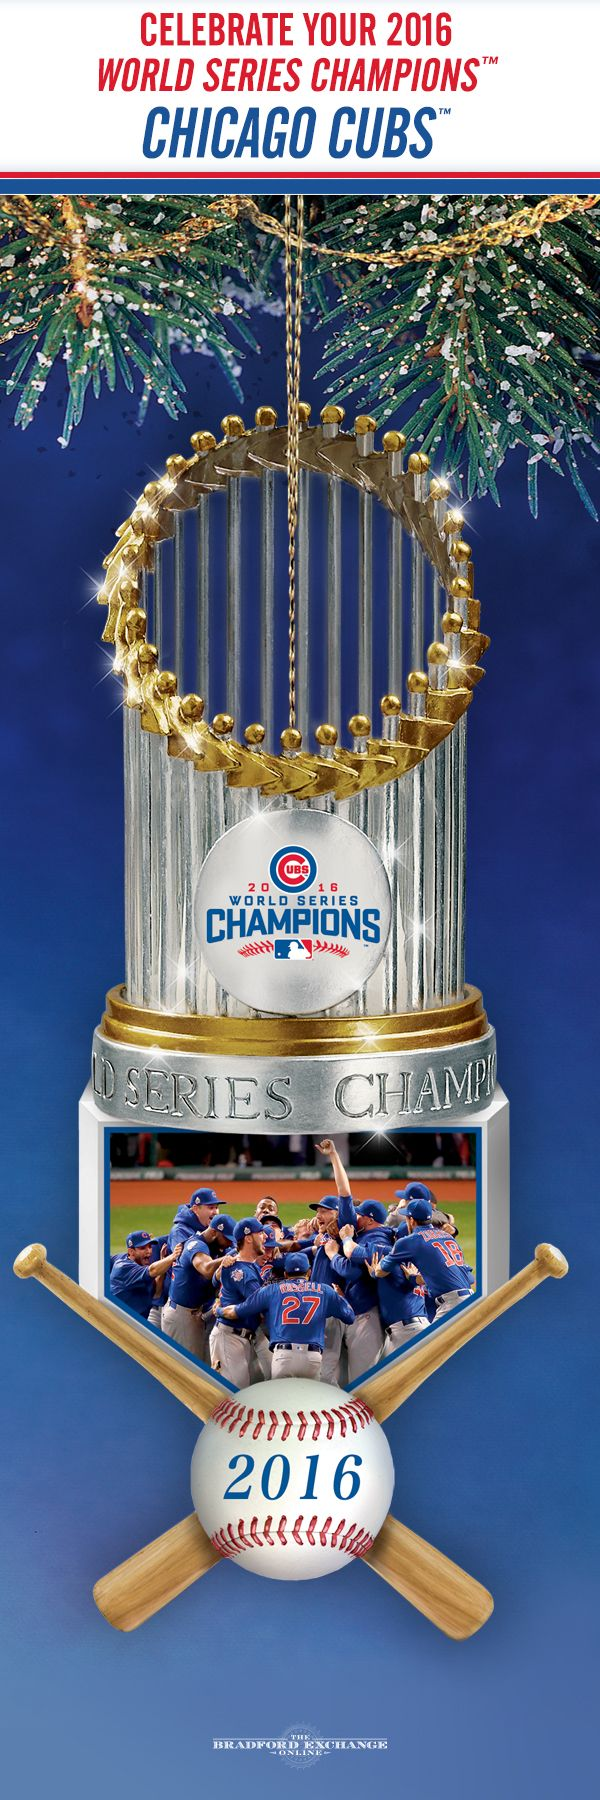 Look what we've got on deck for the Christmas season... It's a festive celebration of your history-making Chicago Cubs.